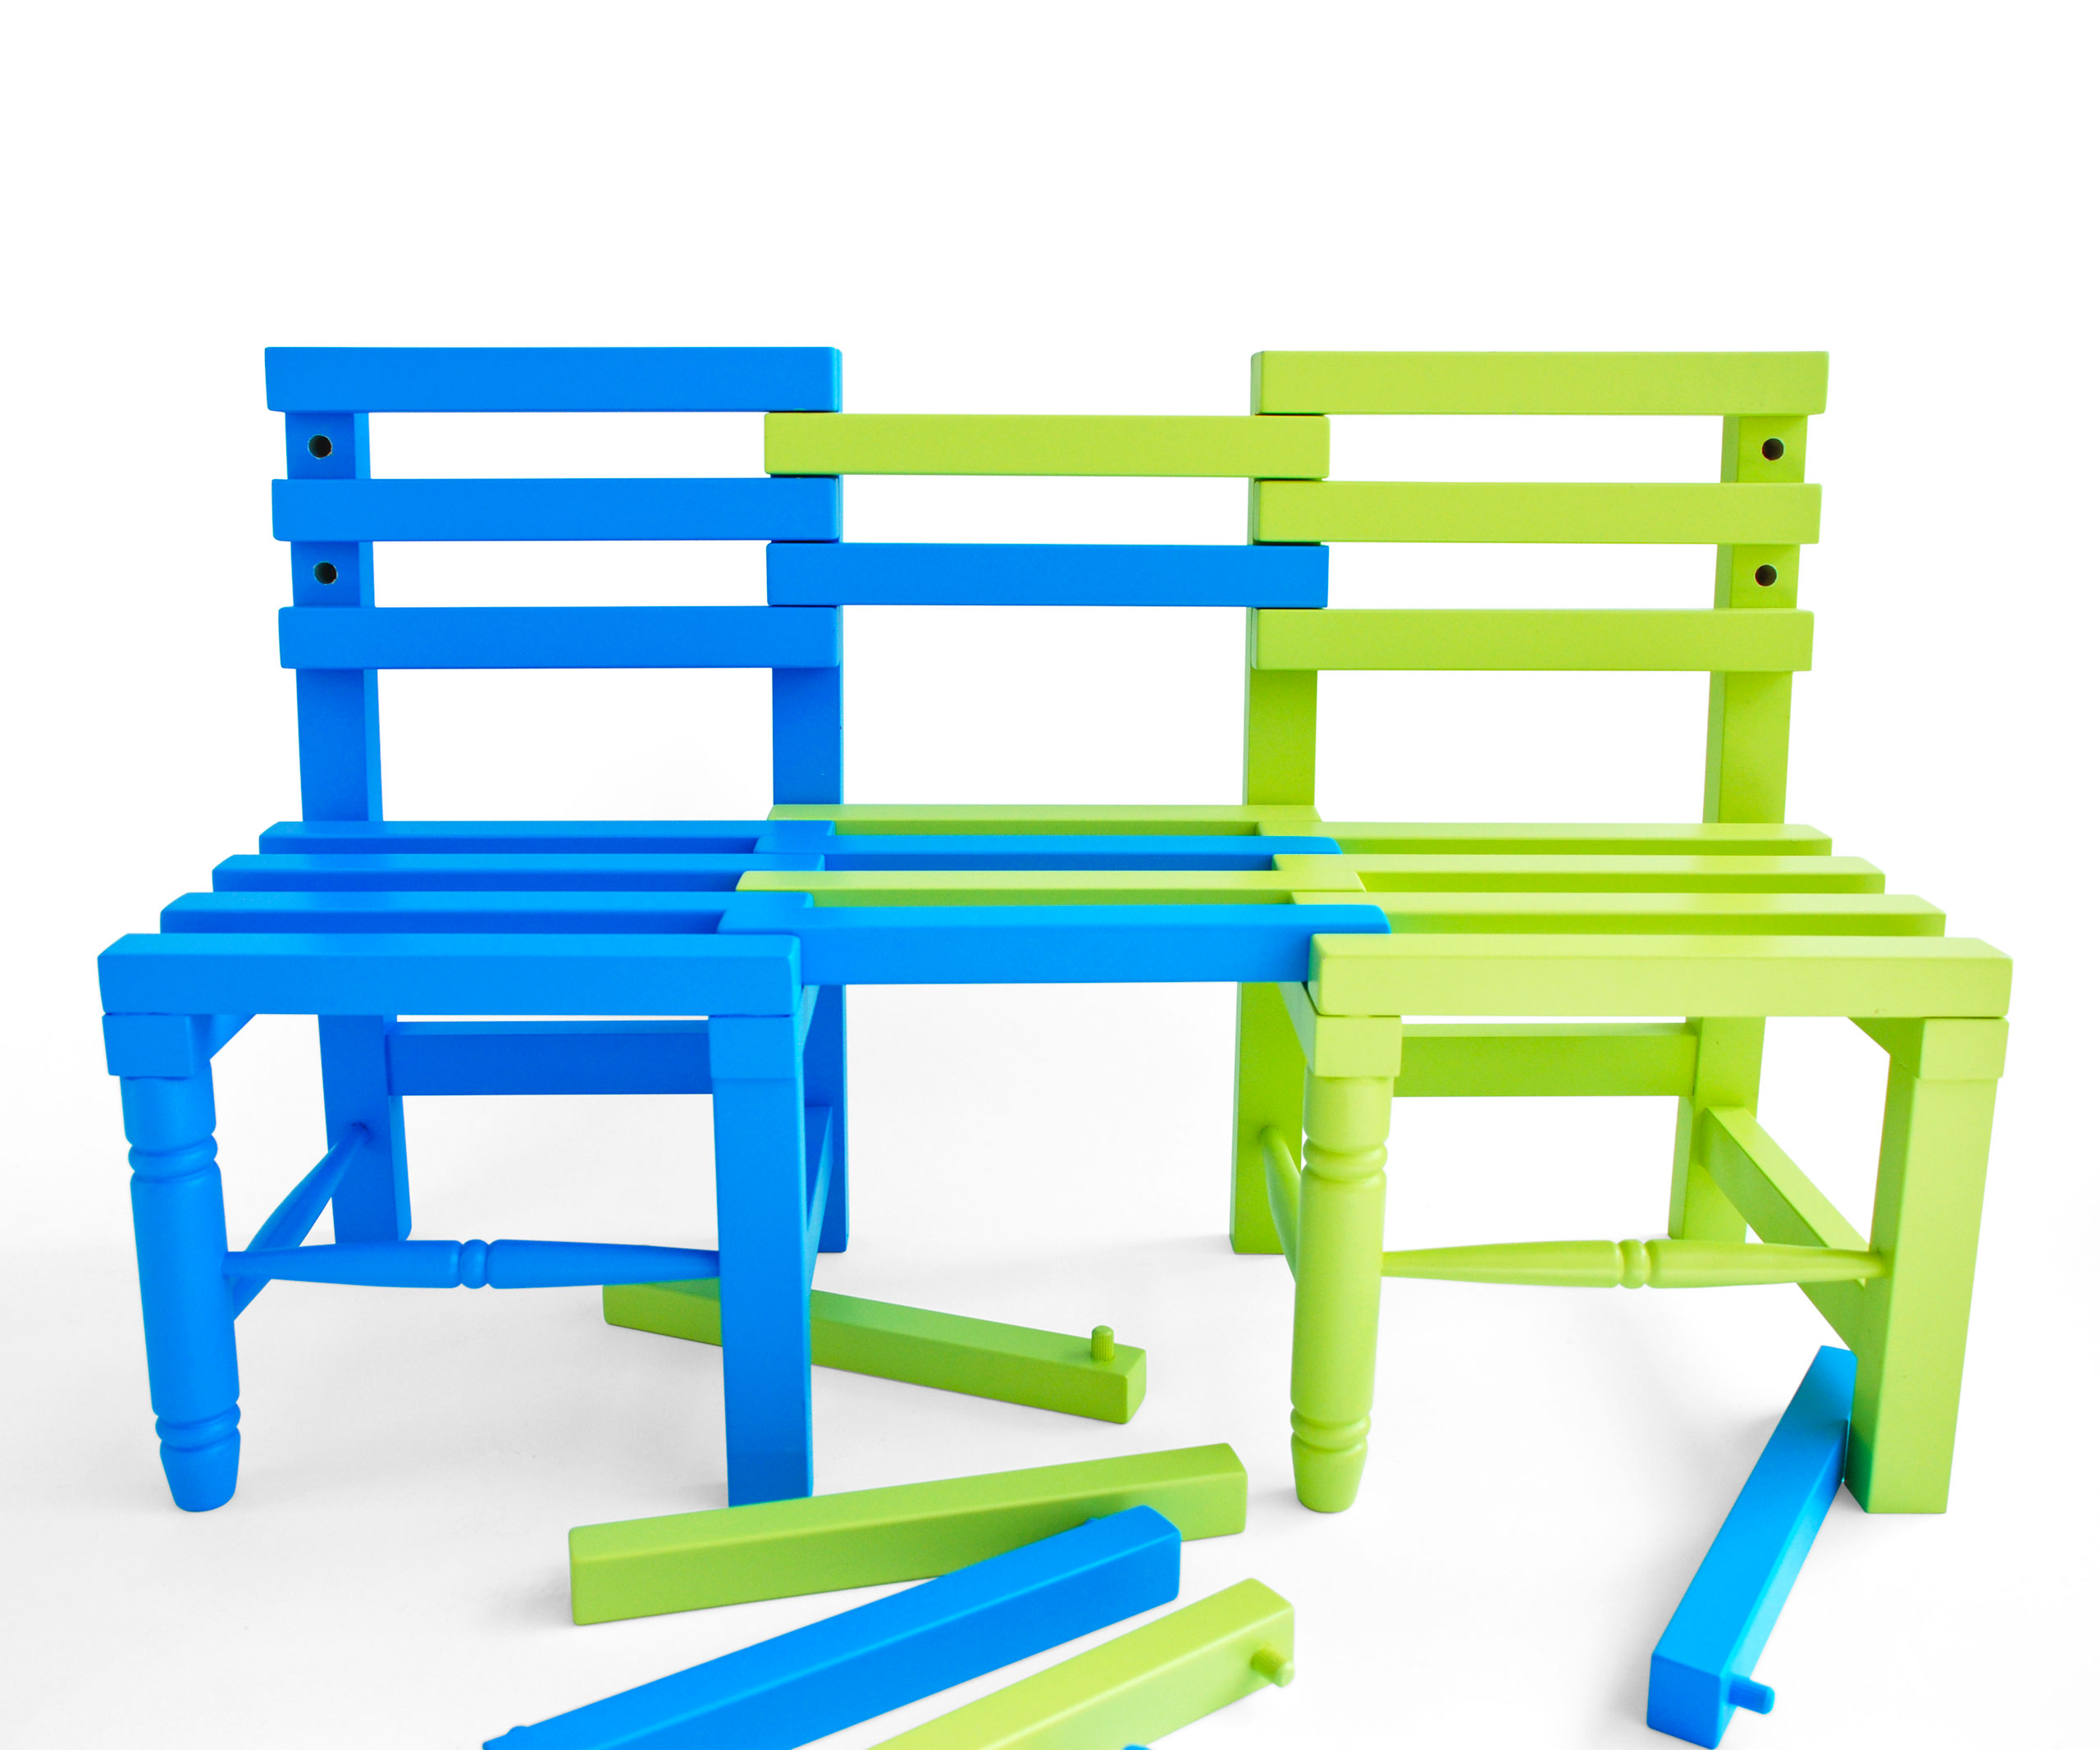 furniture_design_chair_children_wood_green_blue